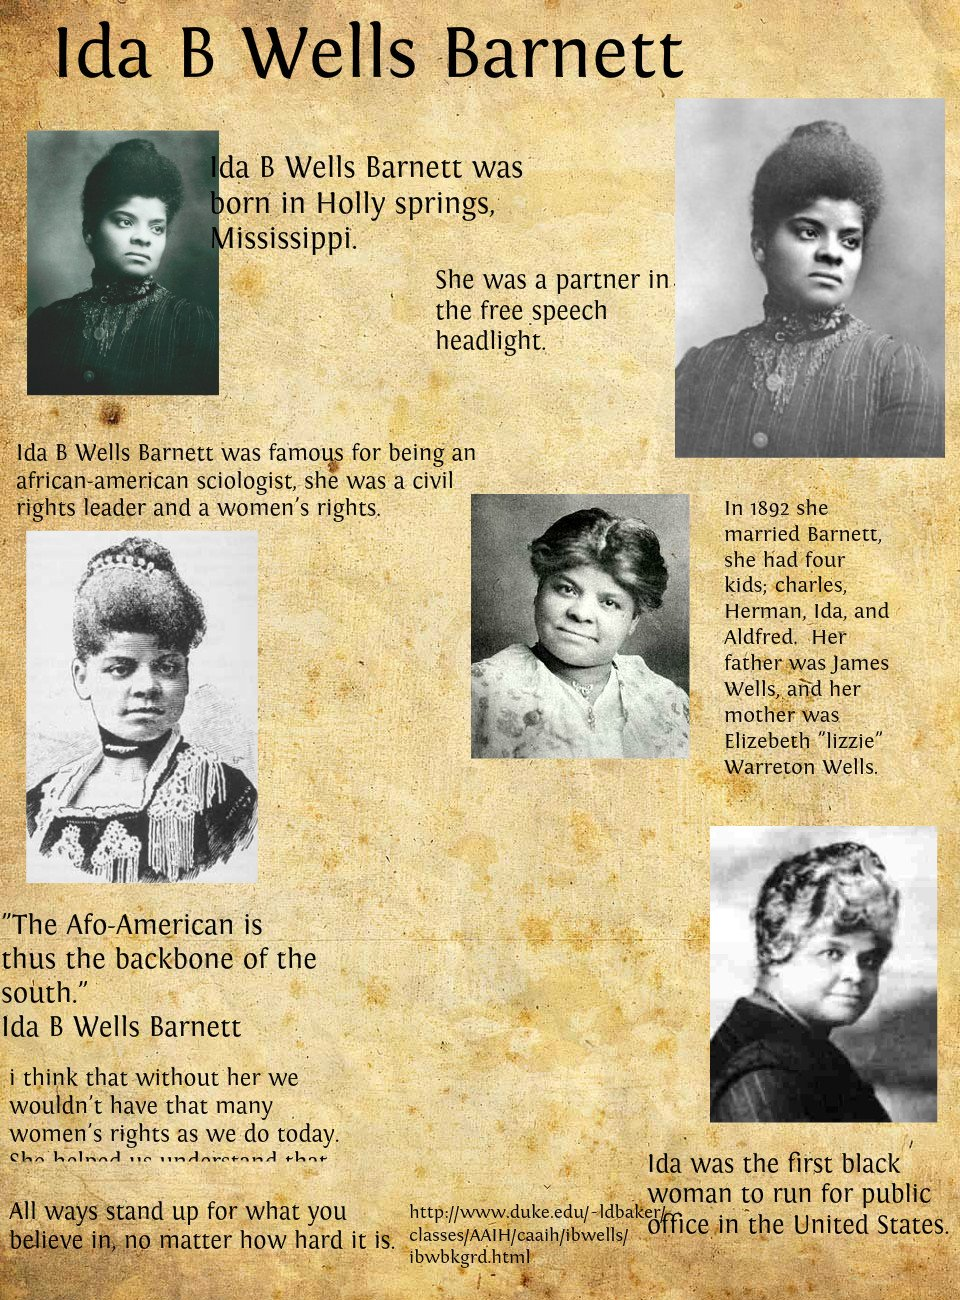 essays on ida b wells barnett